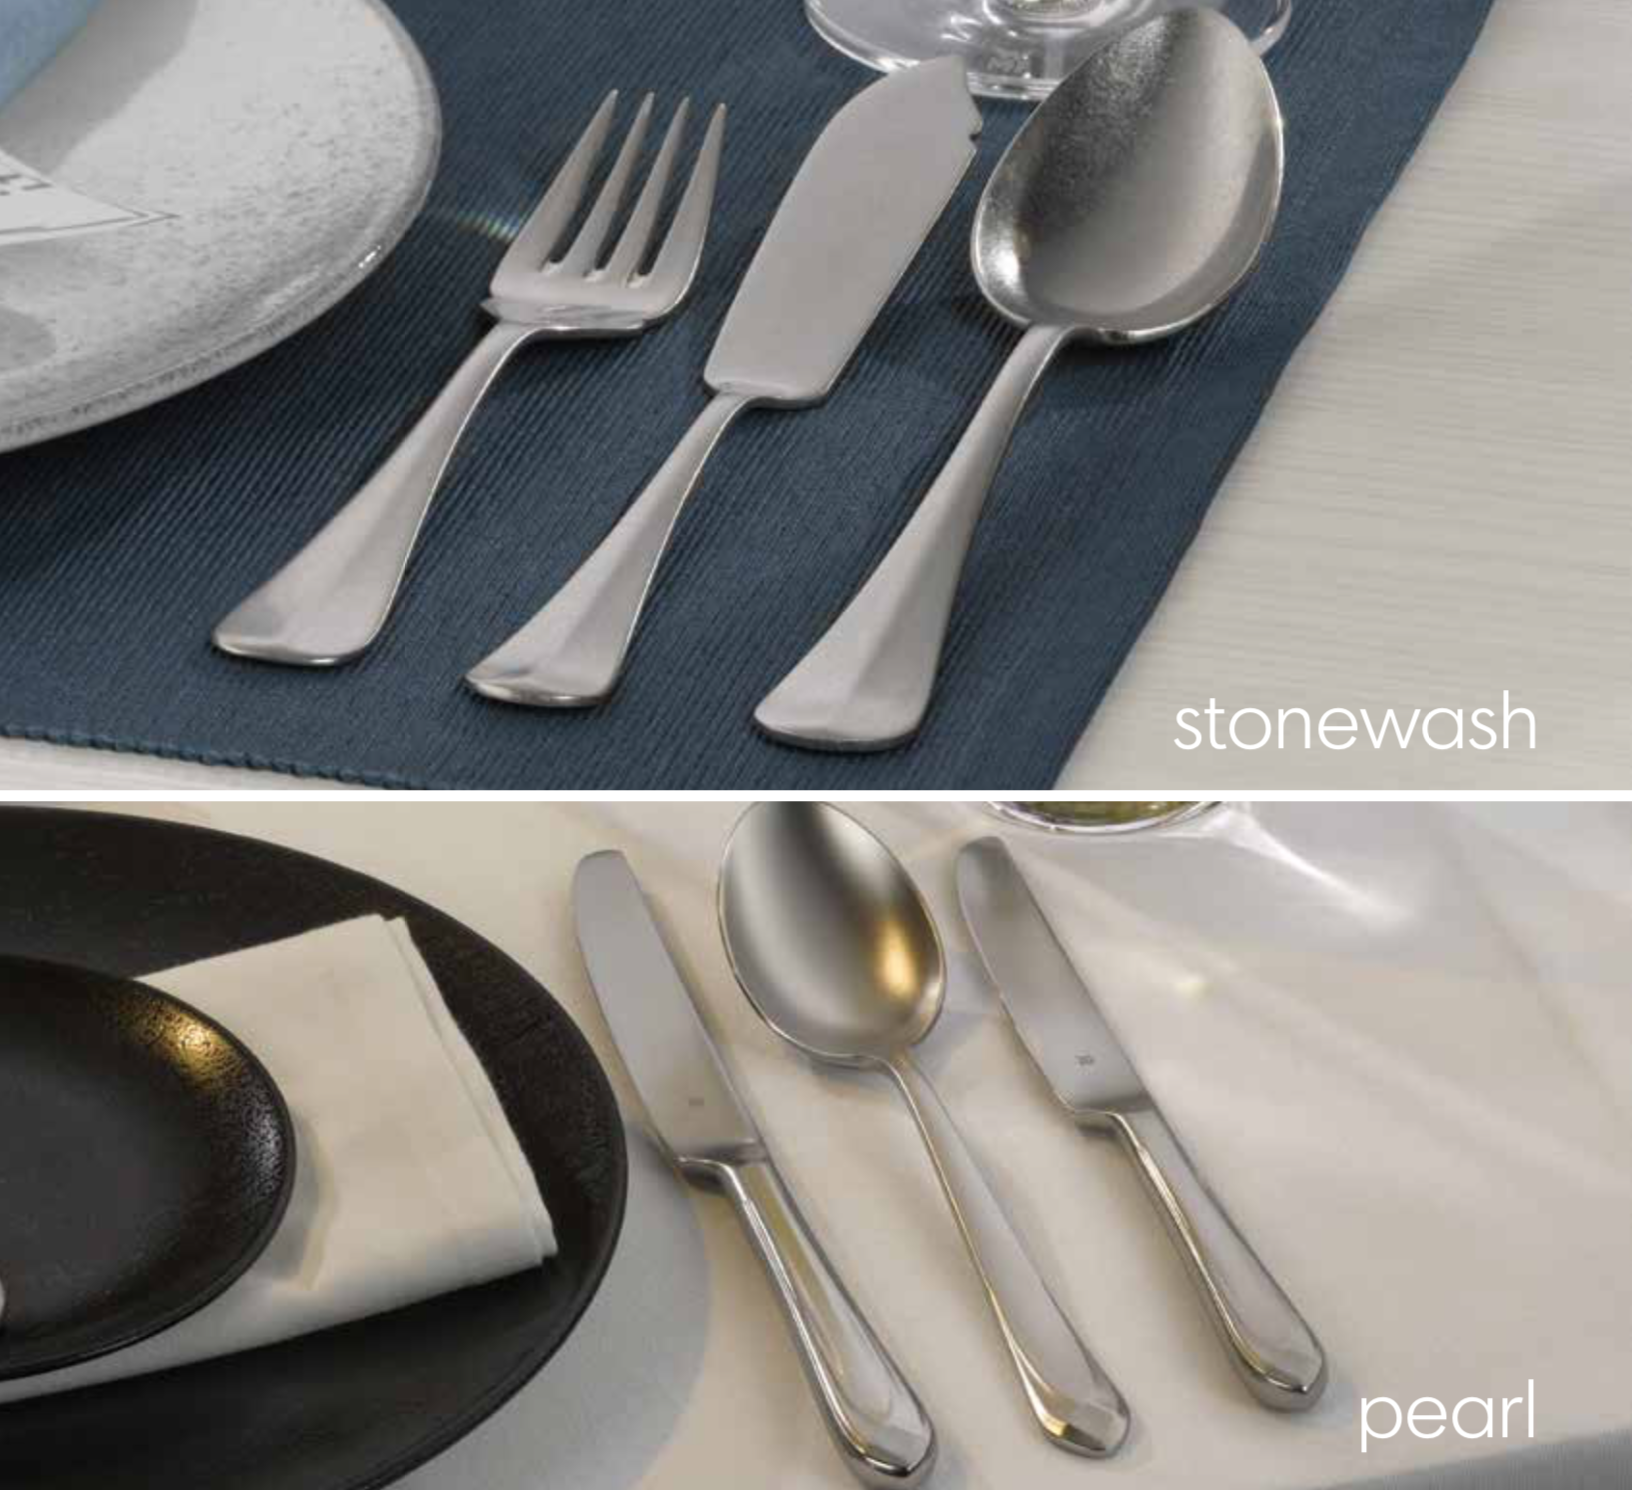 Pearl vs. Stonewash - A Quick Comparison of These Popular Flatware Finishes